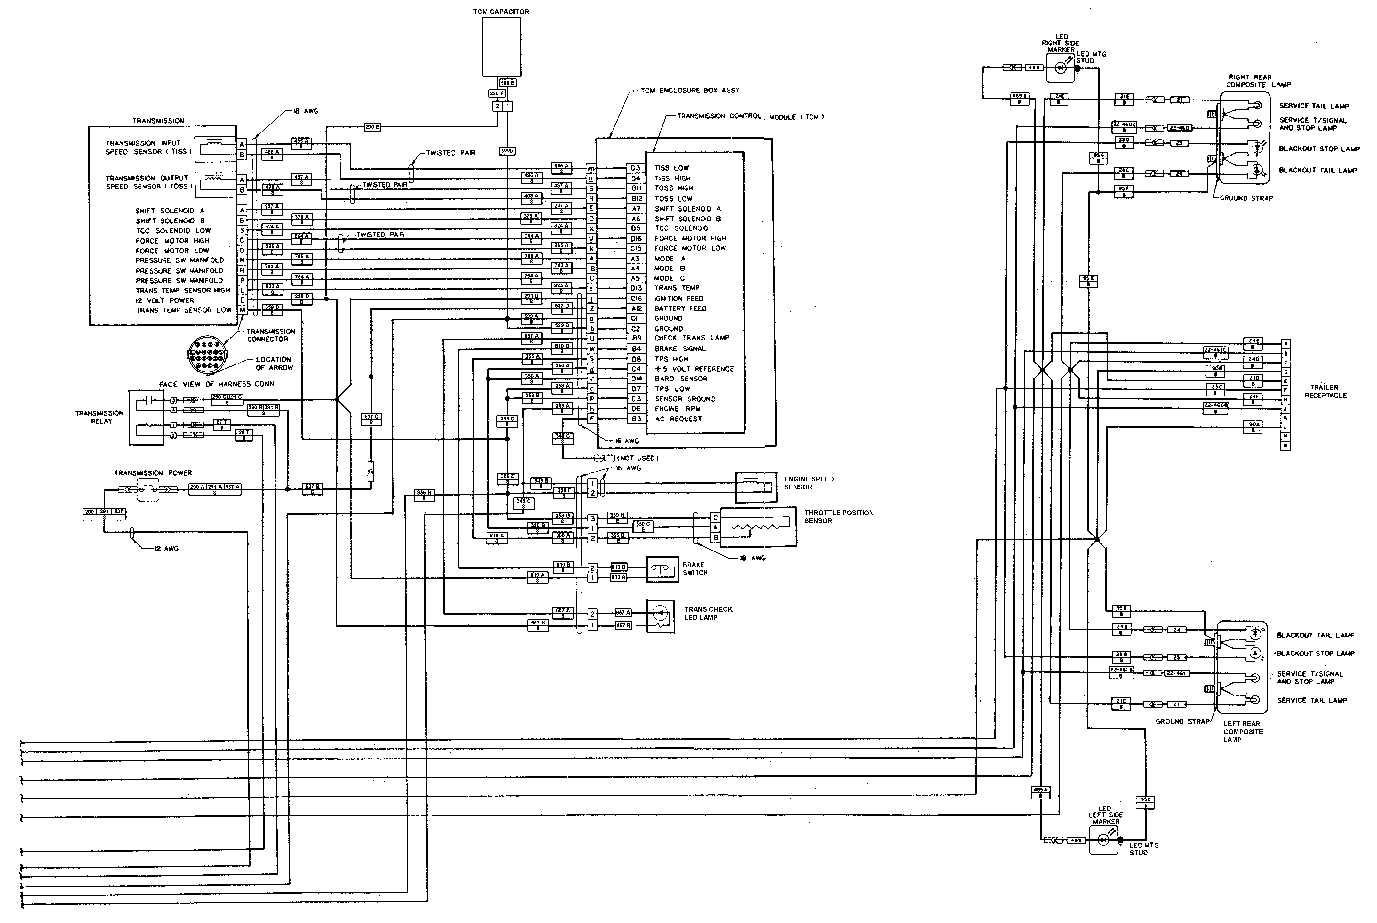 m715 wiring diagram hmmwv wiring diagram wiring diagram